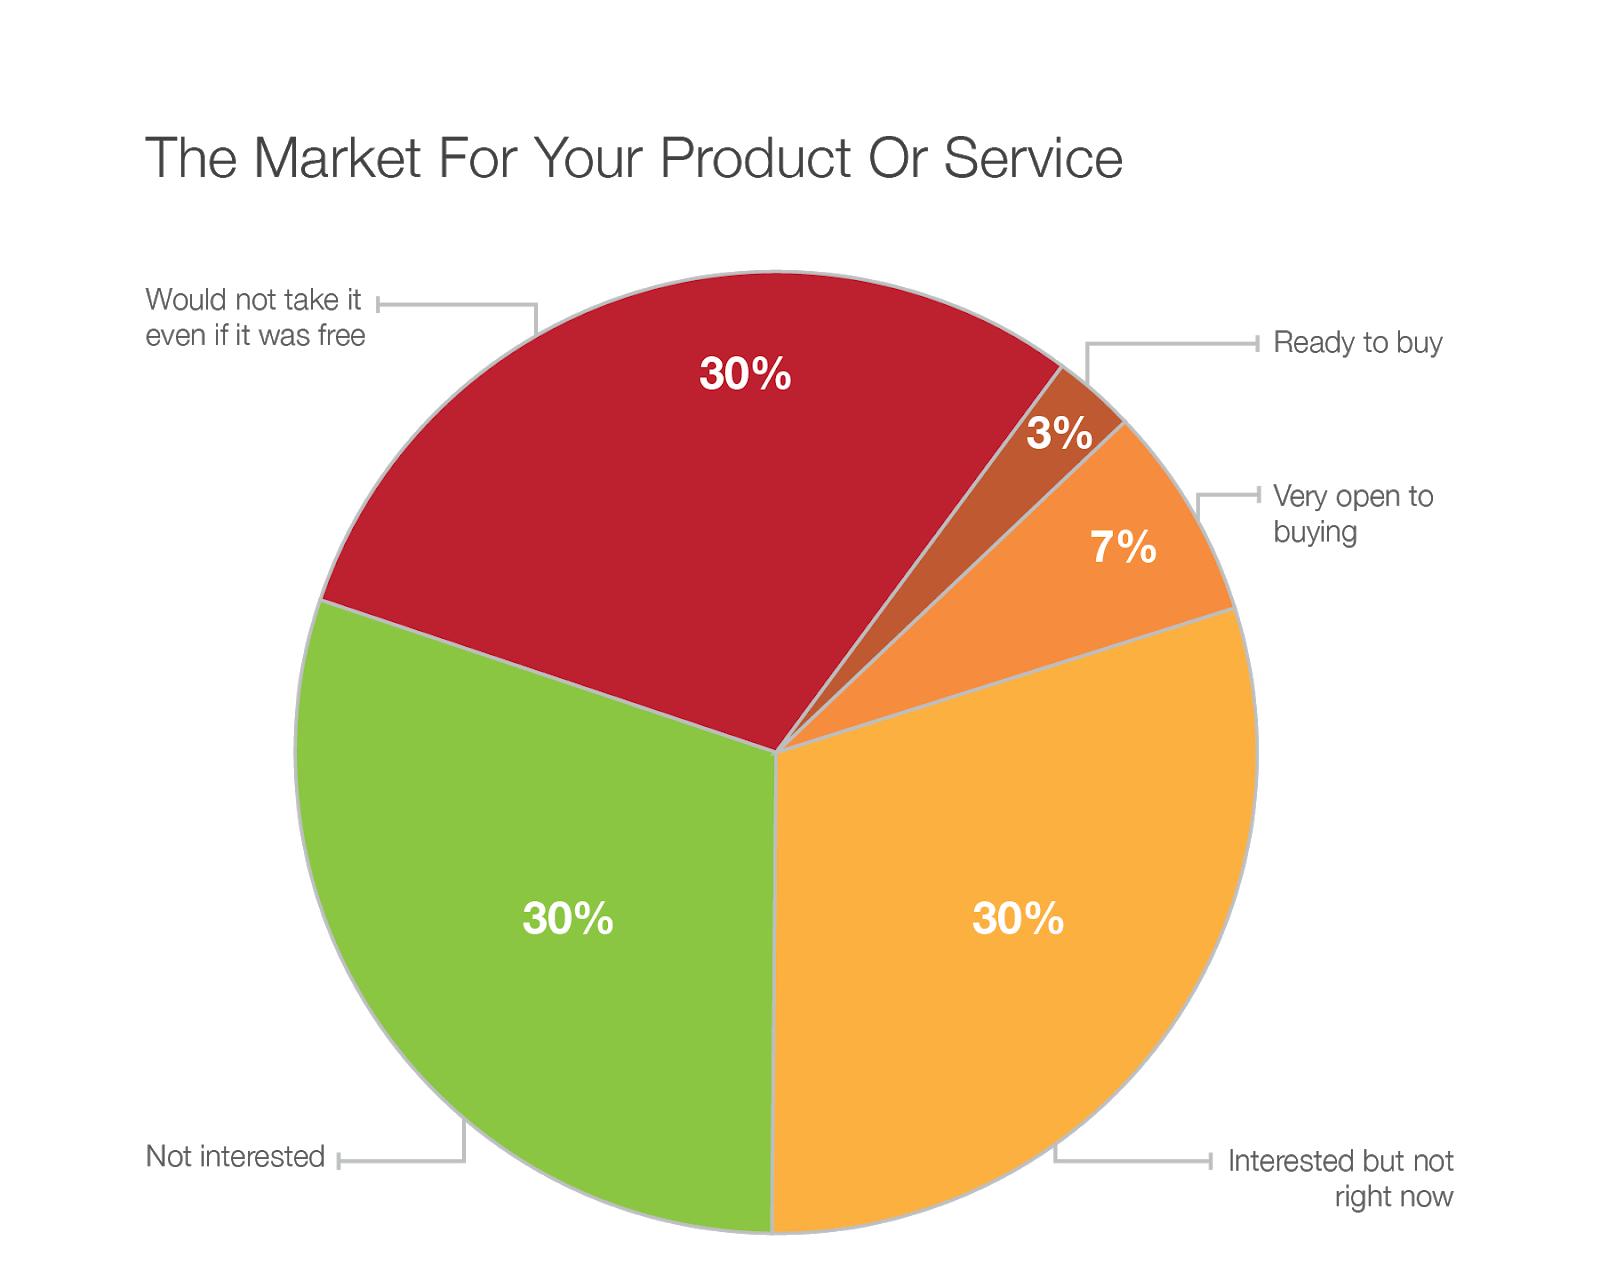 pie chart of a target market when buying products or services